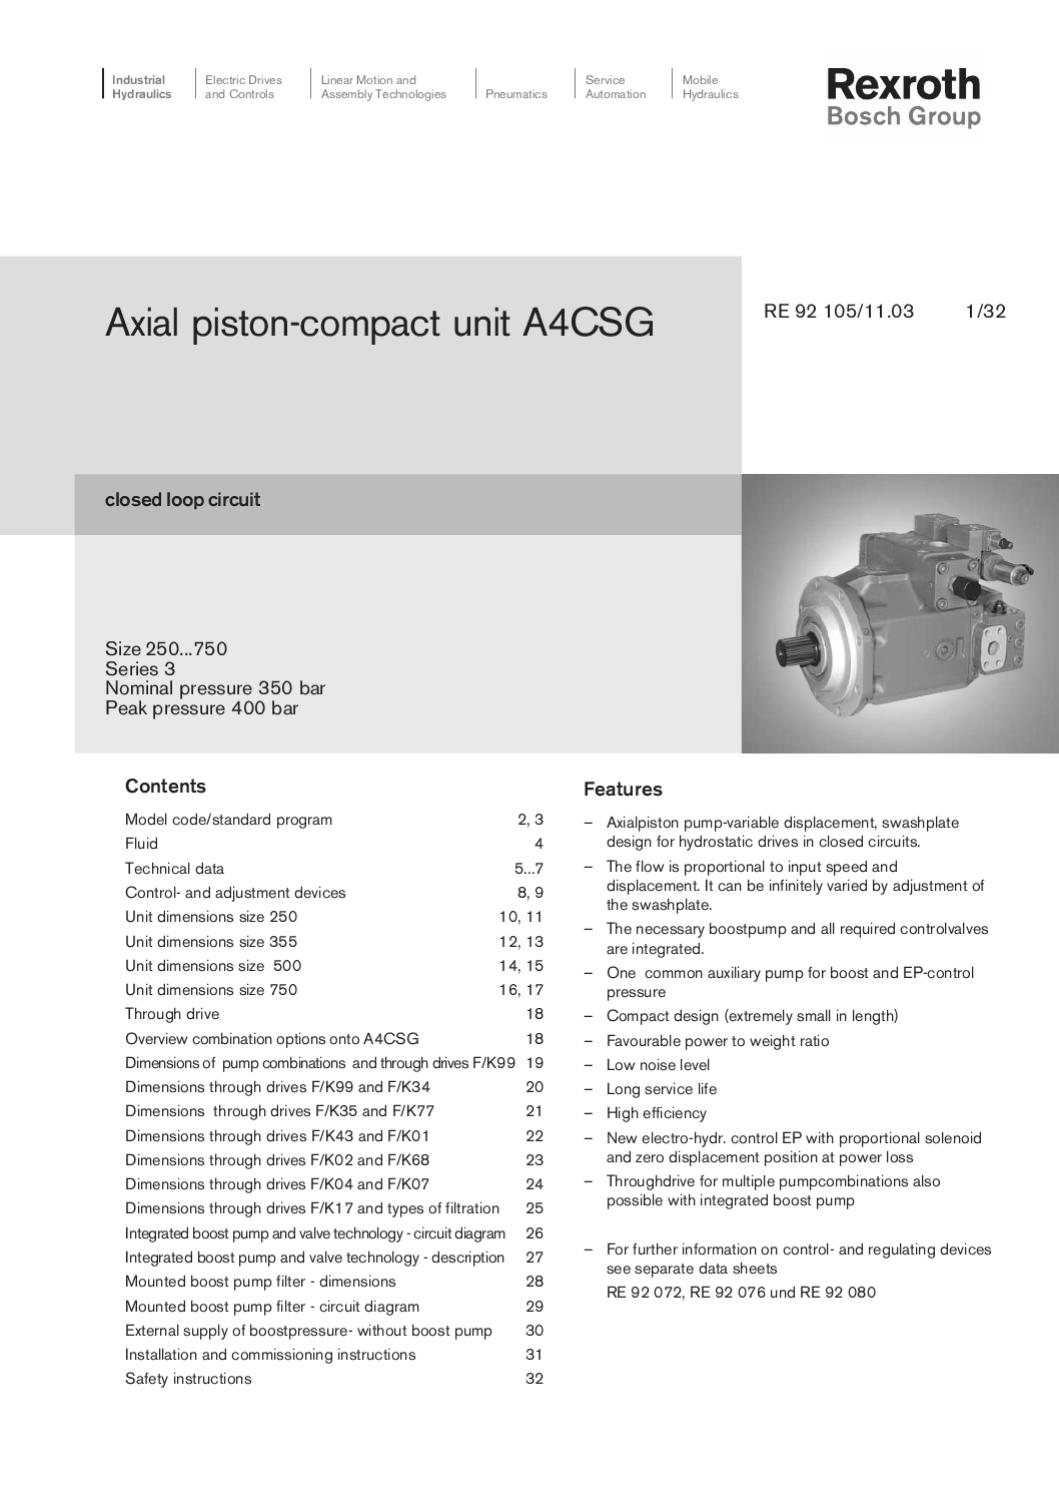 Specification Rexroth Piston Compact Unit A4CSG by MH